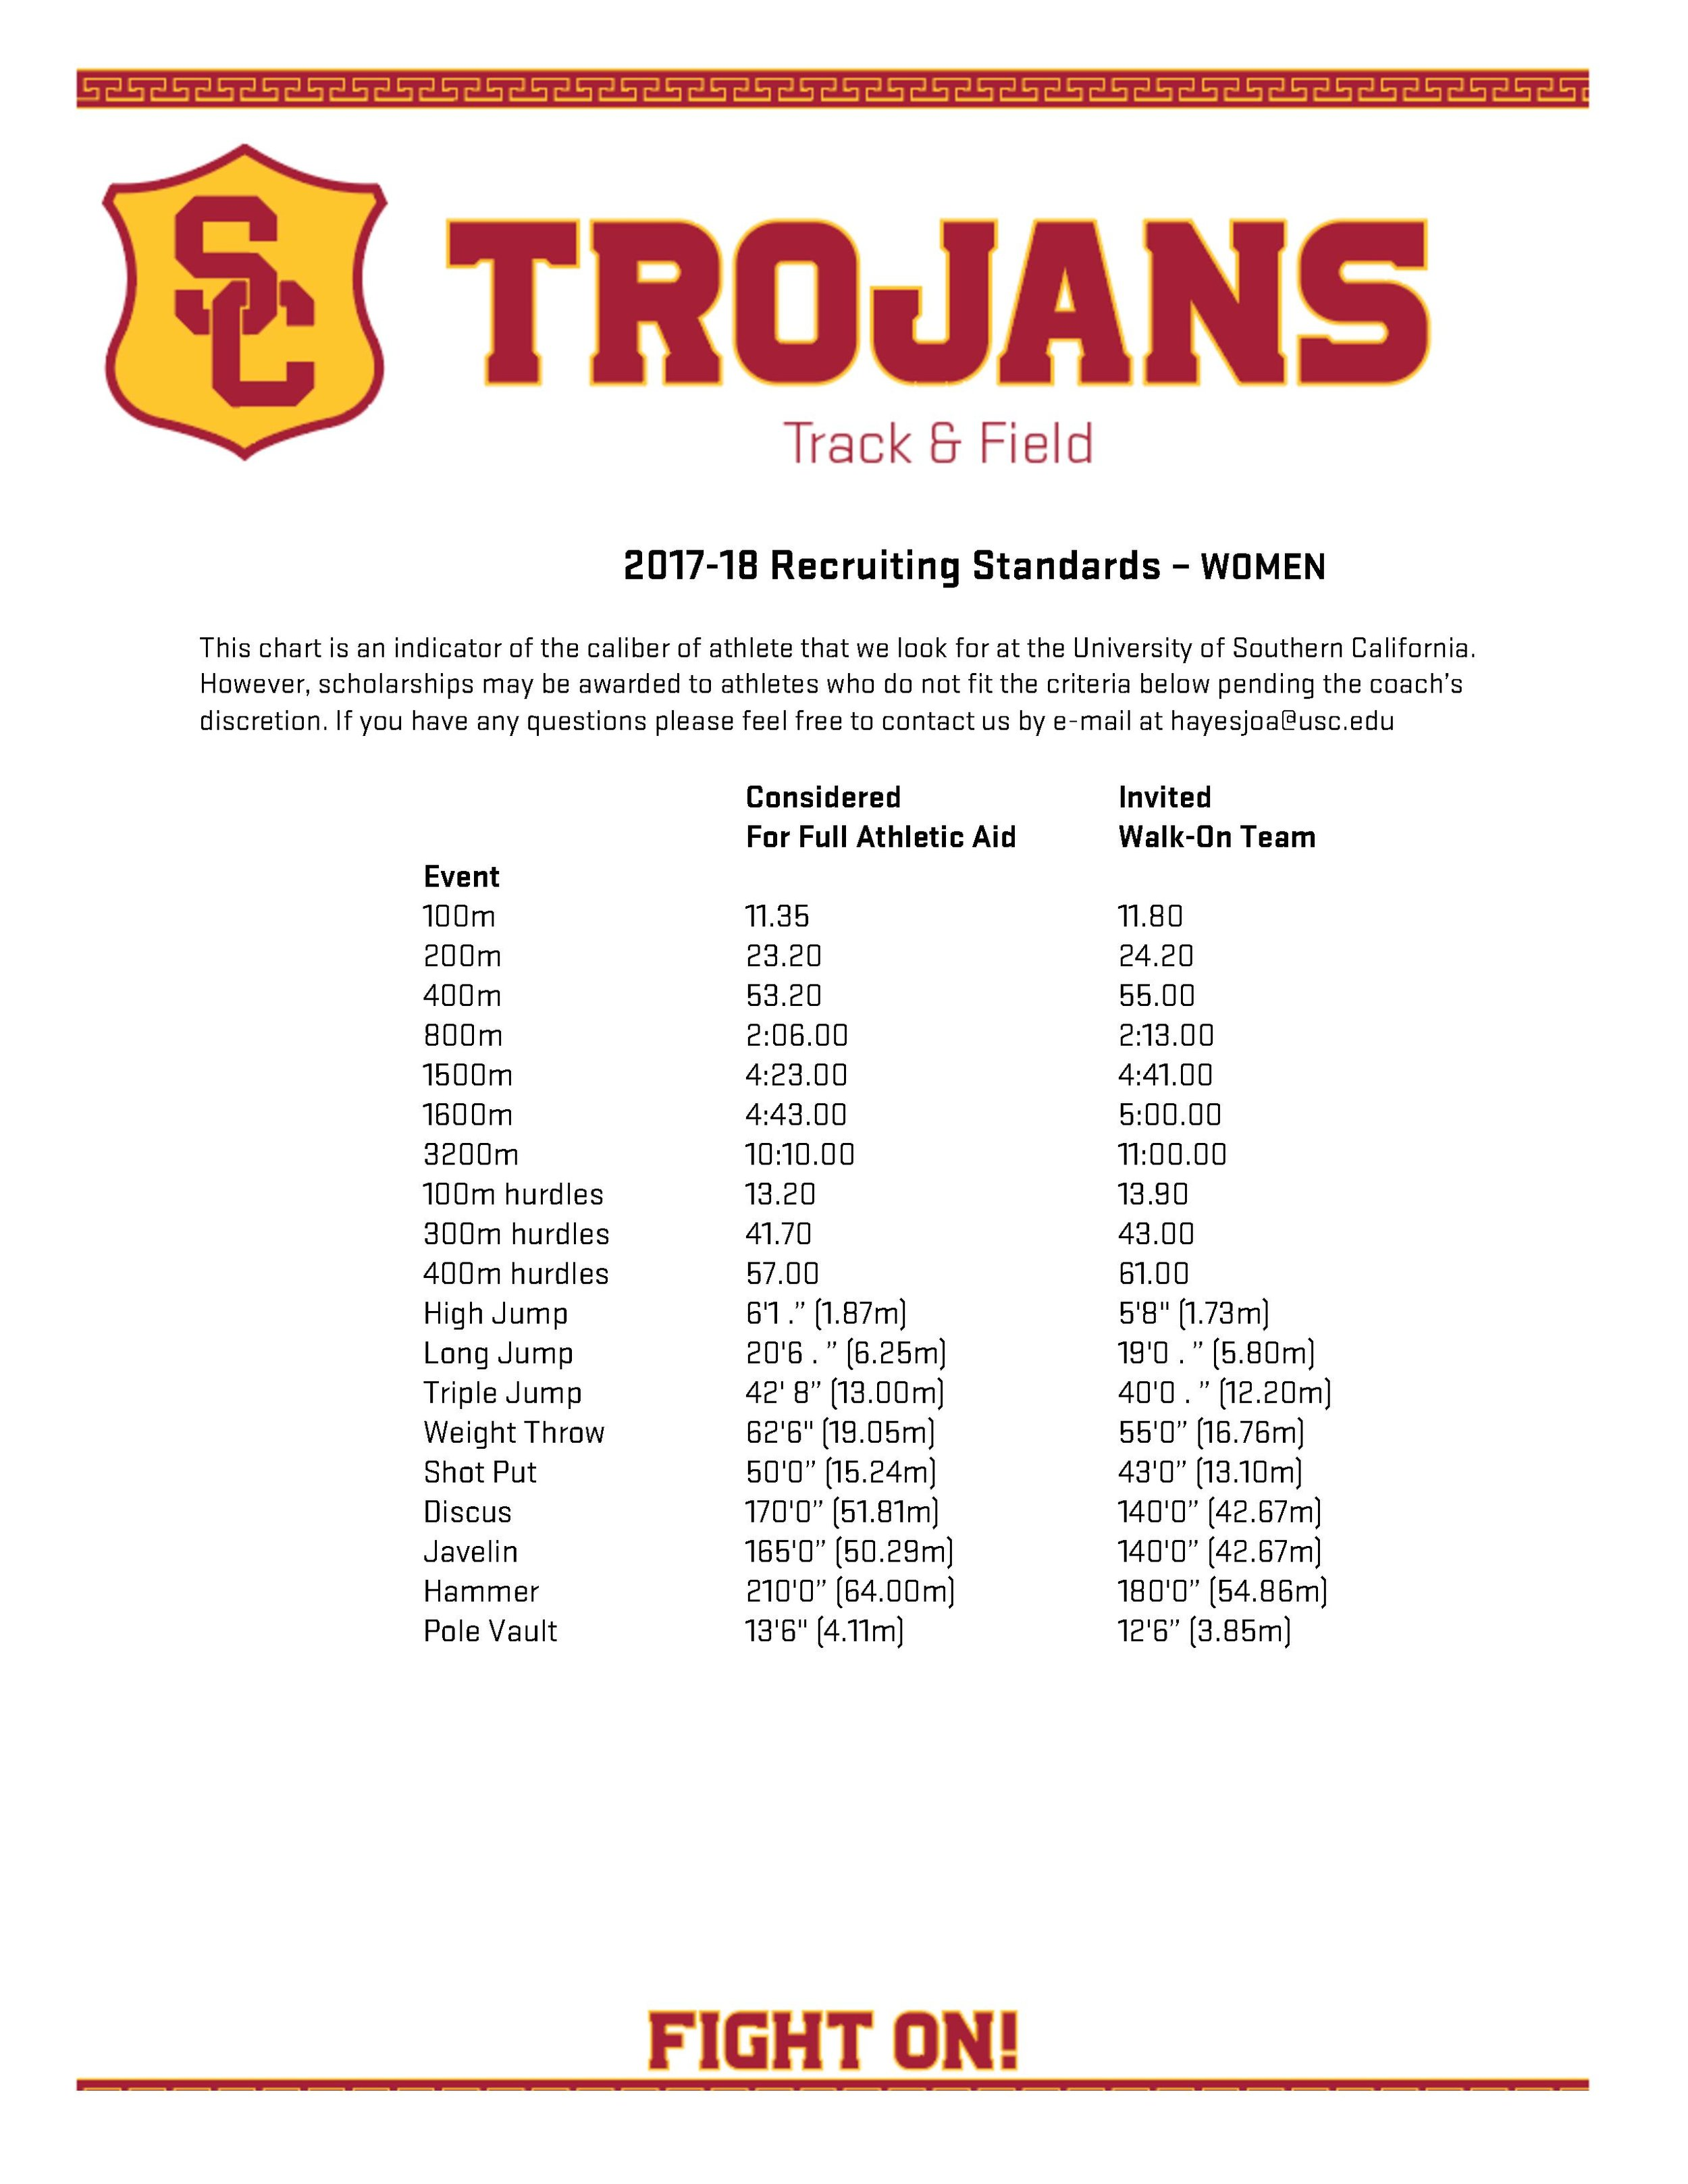 2017-18 Womens Recruiting Standards.jpg